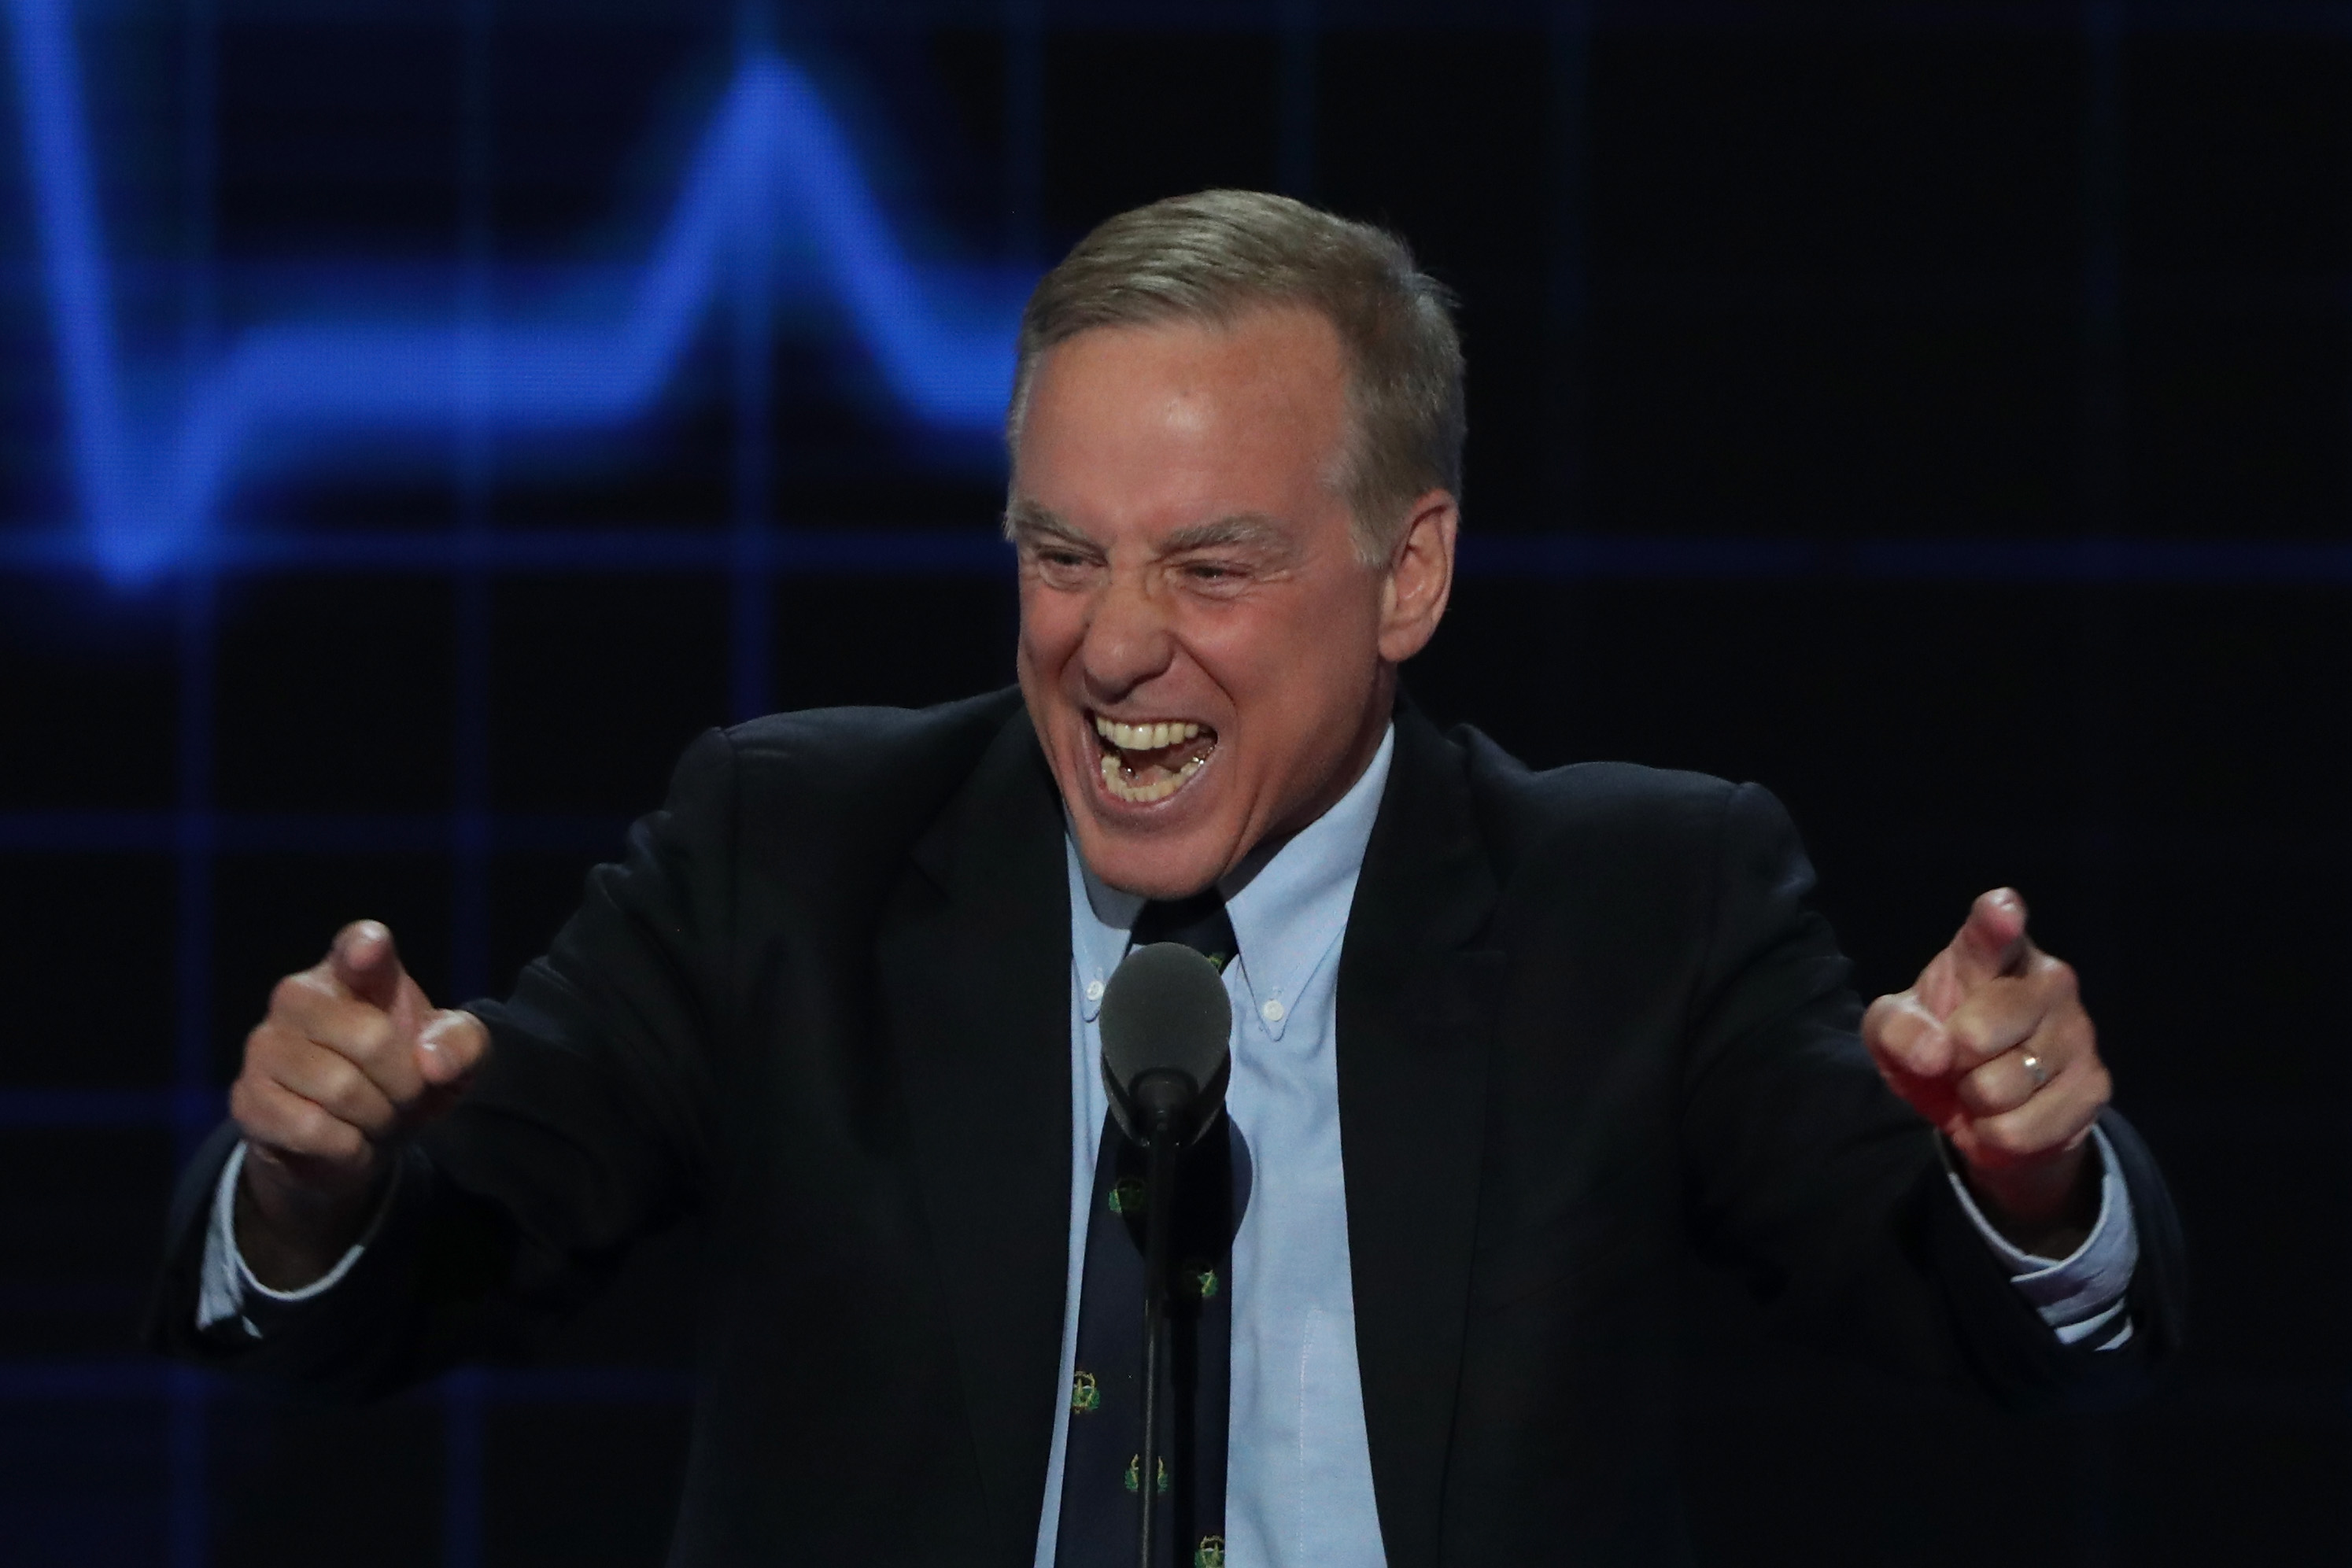 Howard Dean at the Democratic convention.